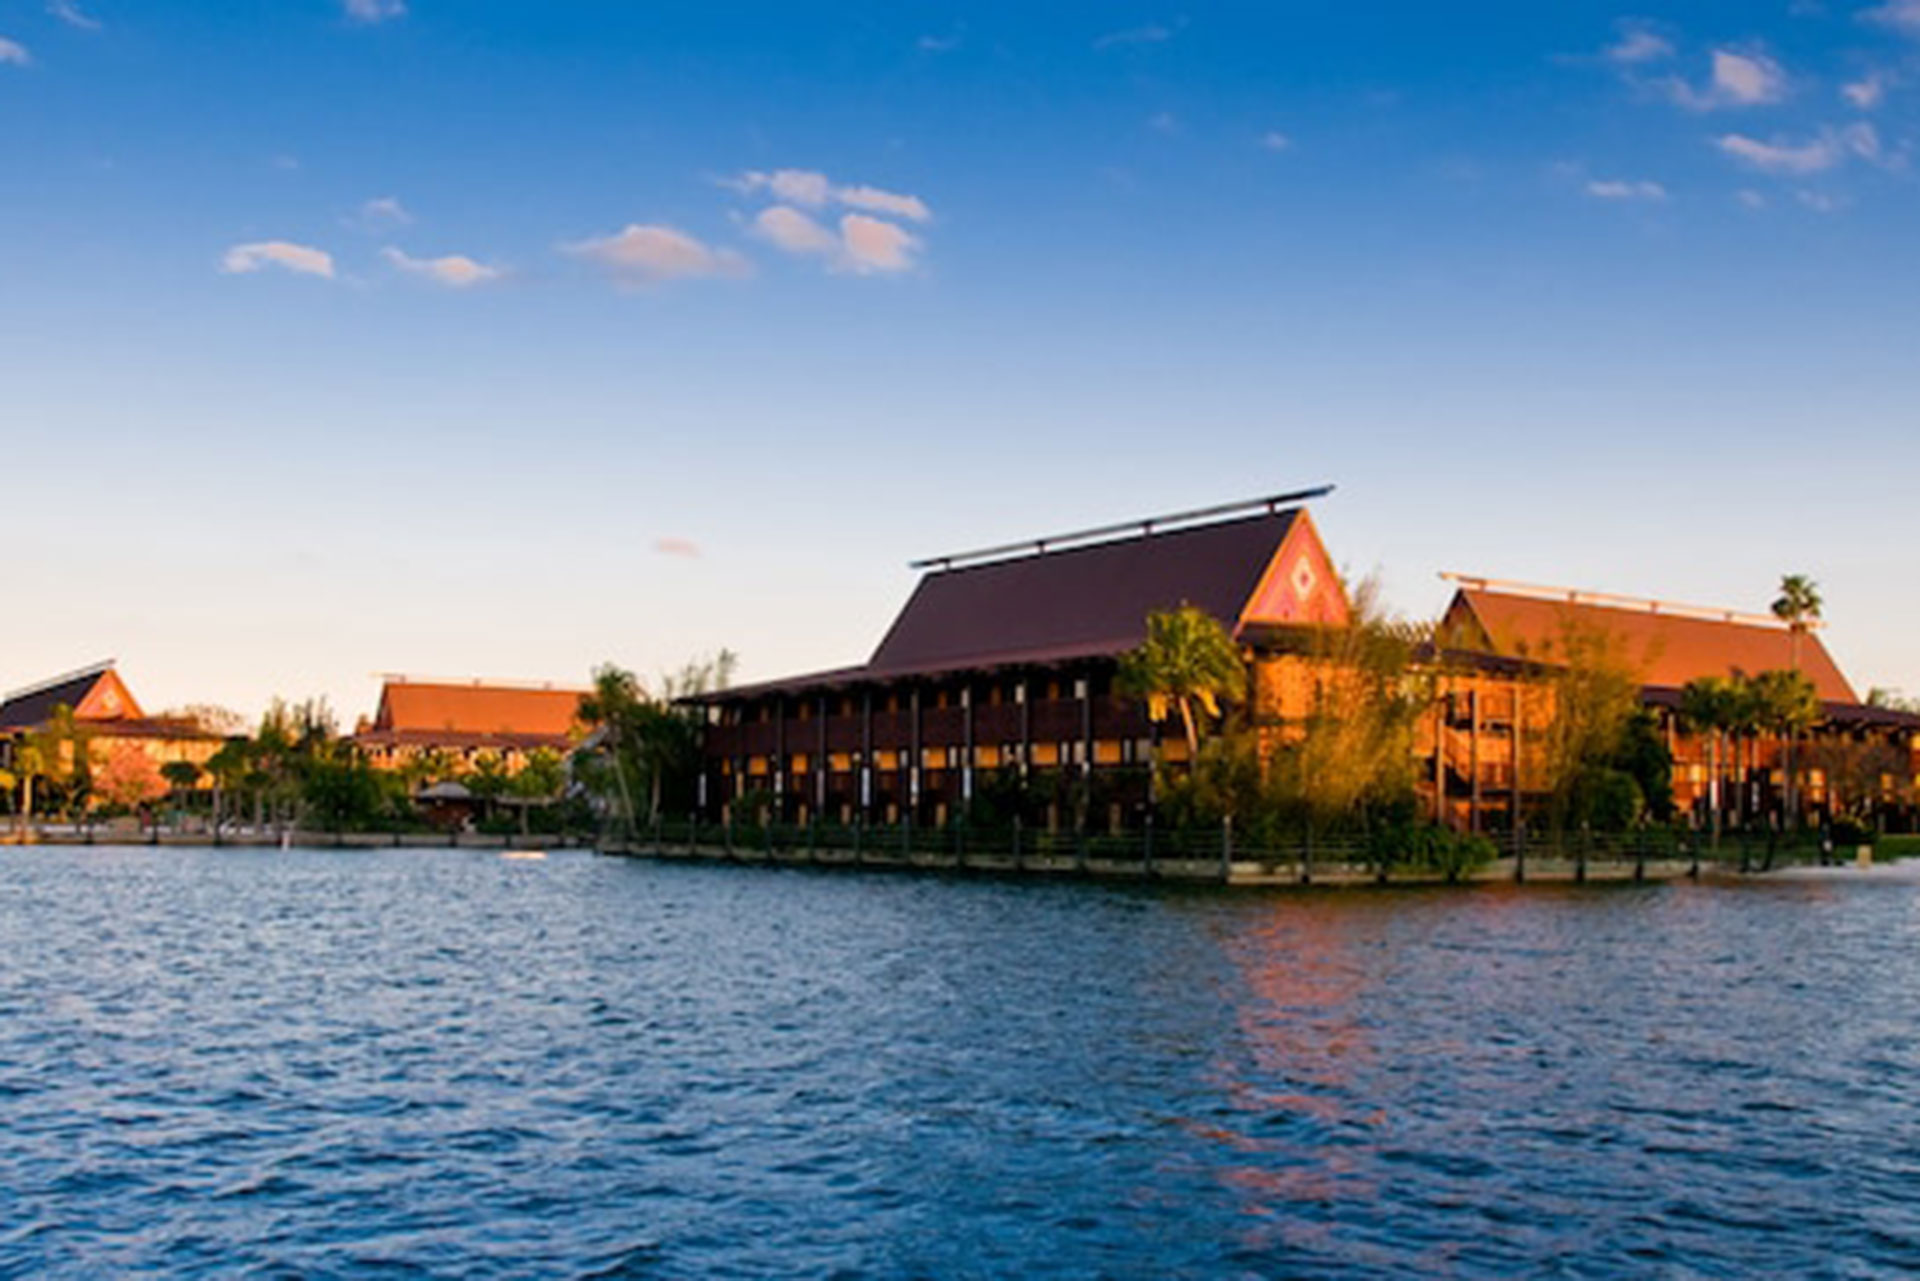 Disney's Polynesian Villas & Bungalows in Orlando, Florida